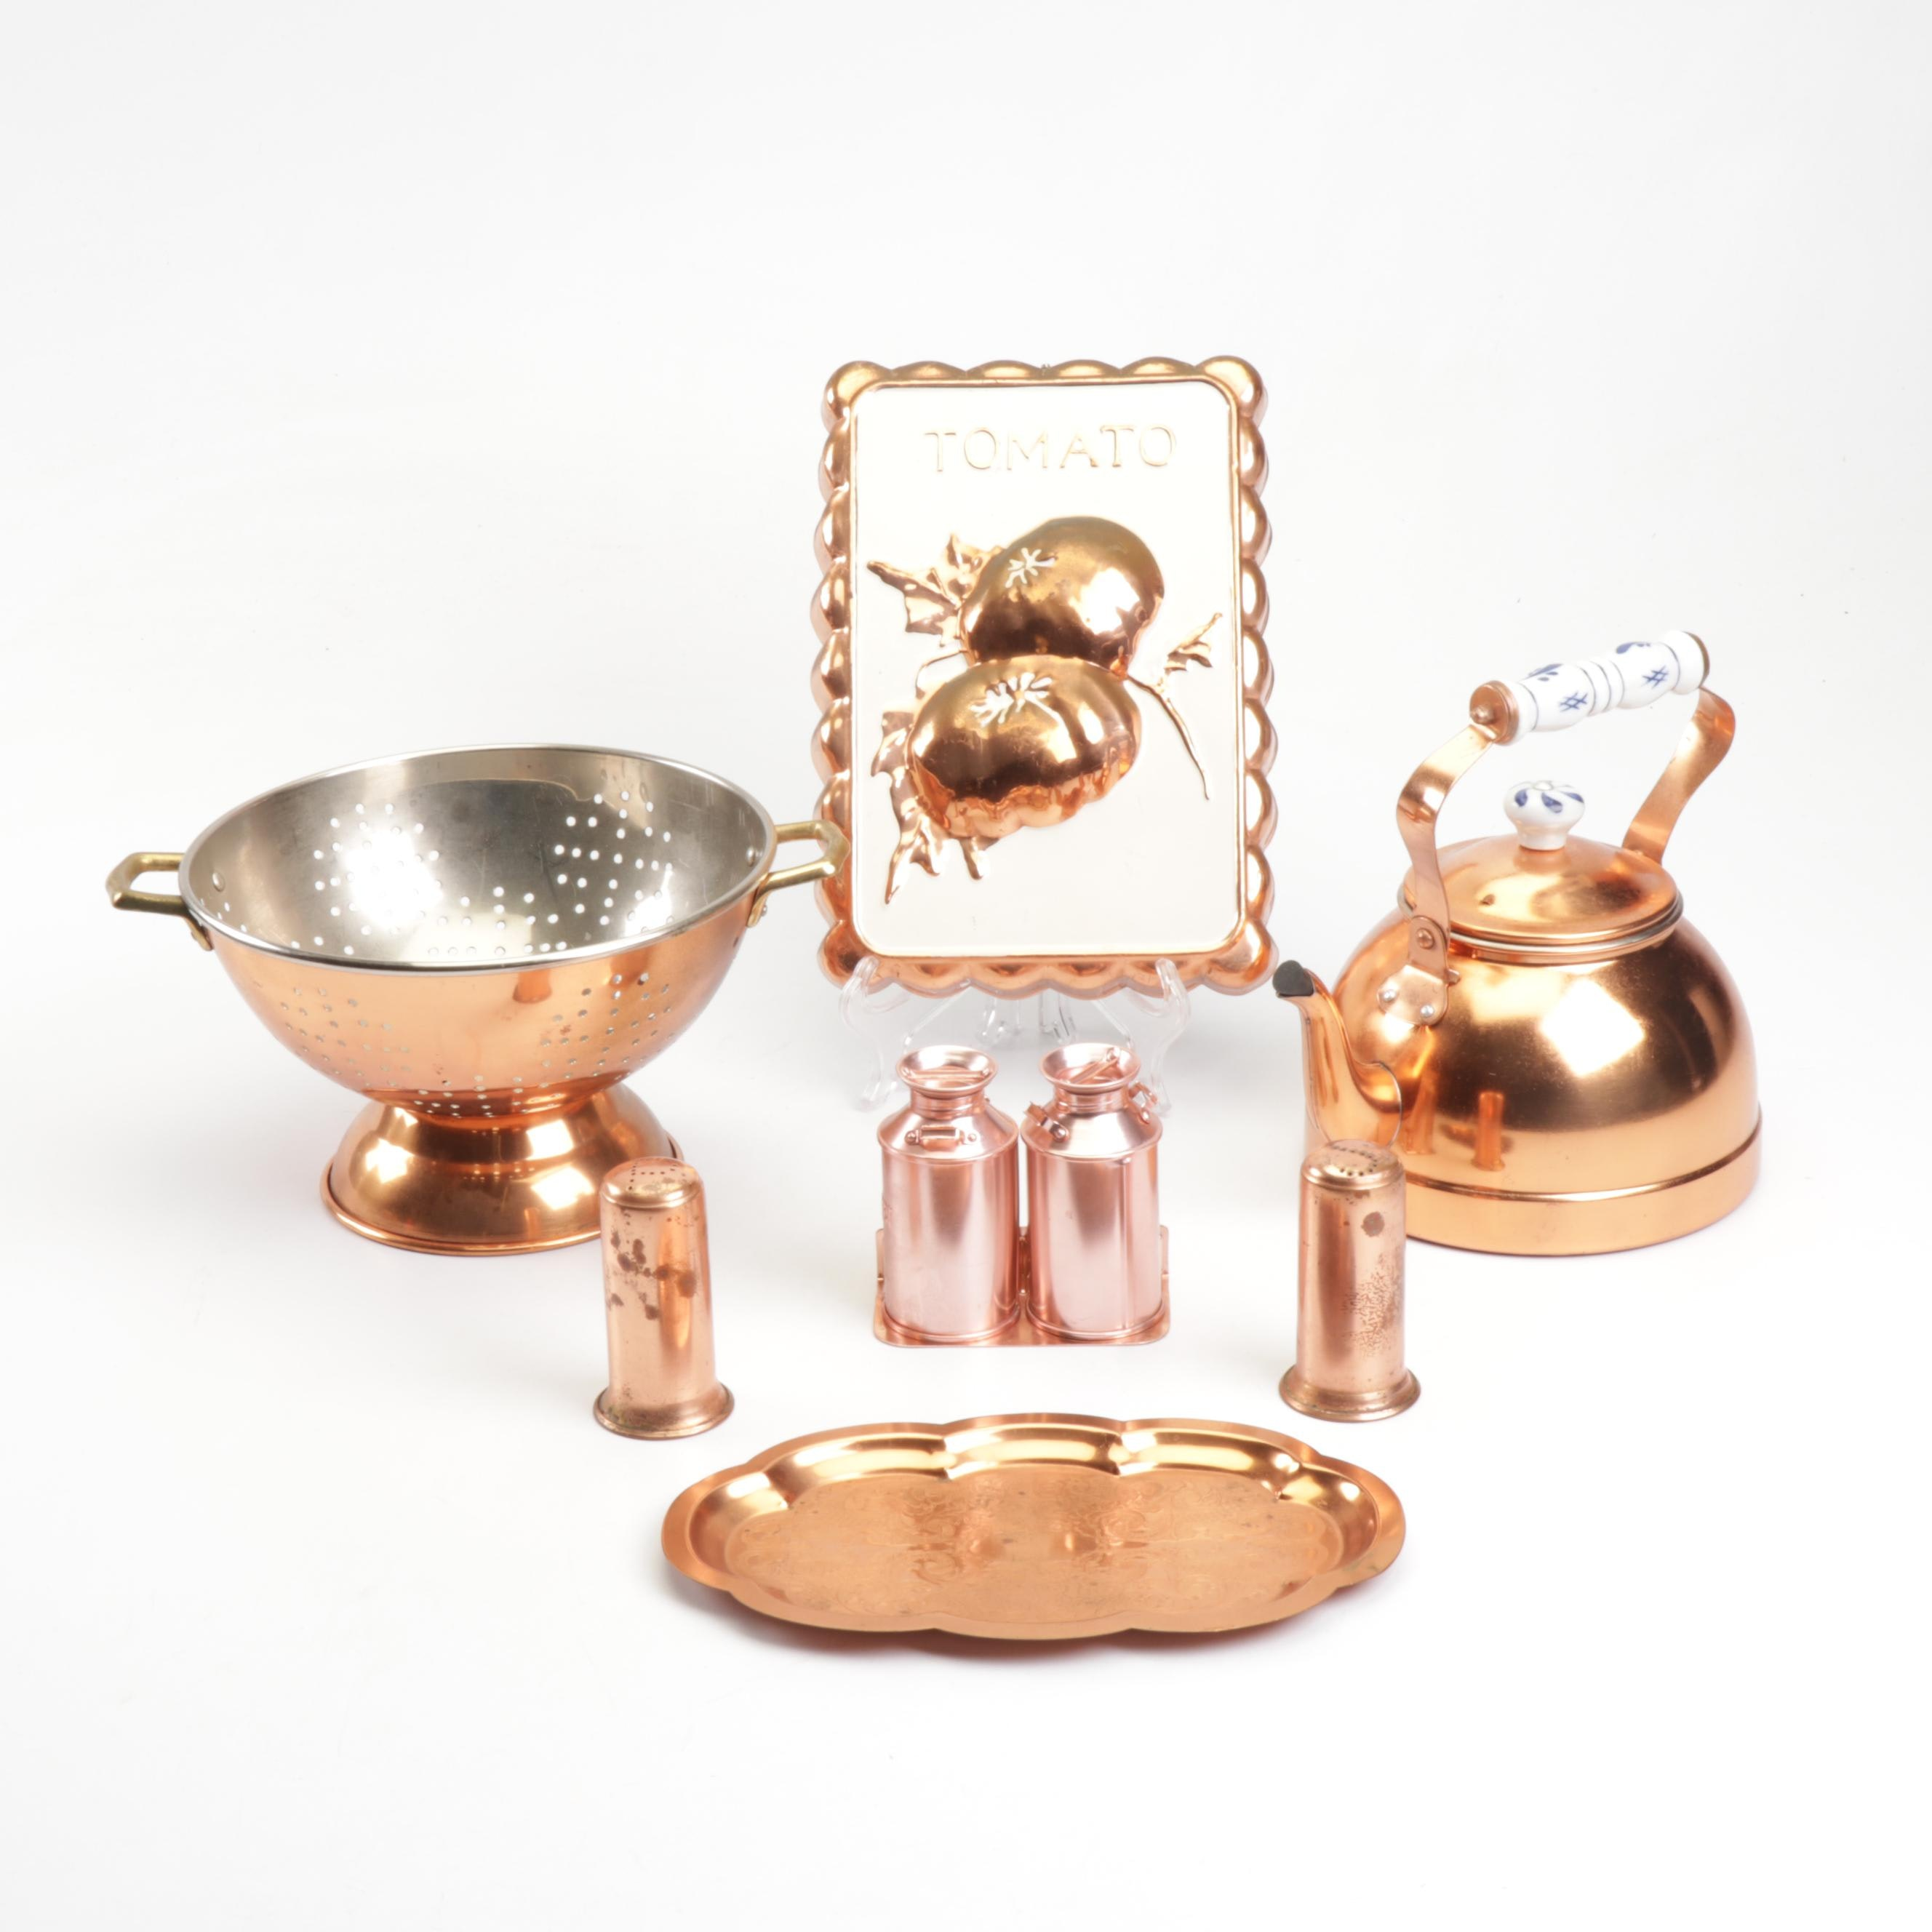 Copper and Plated Kitchenware and Decor Including Colander and Tea Kettle